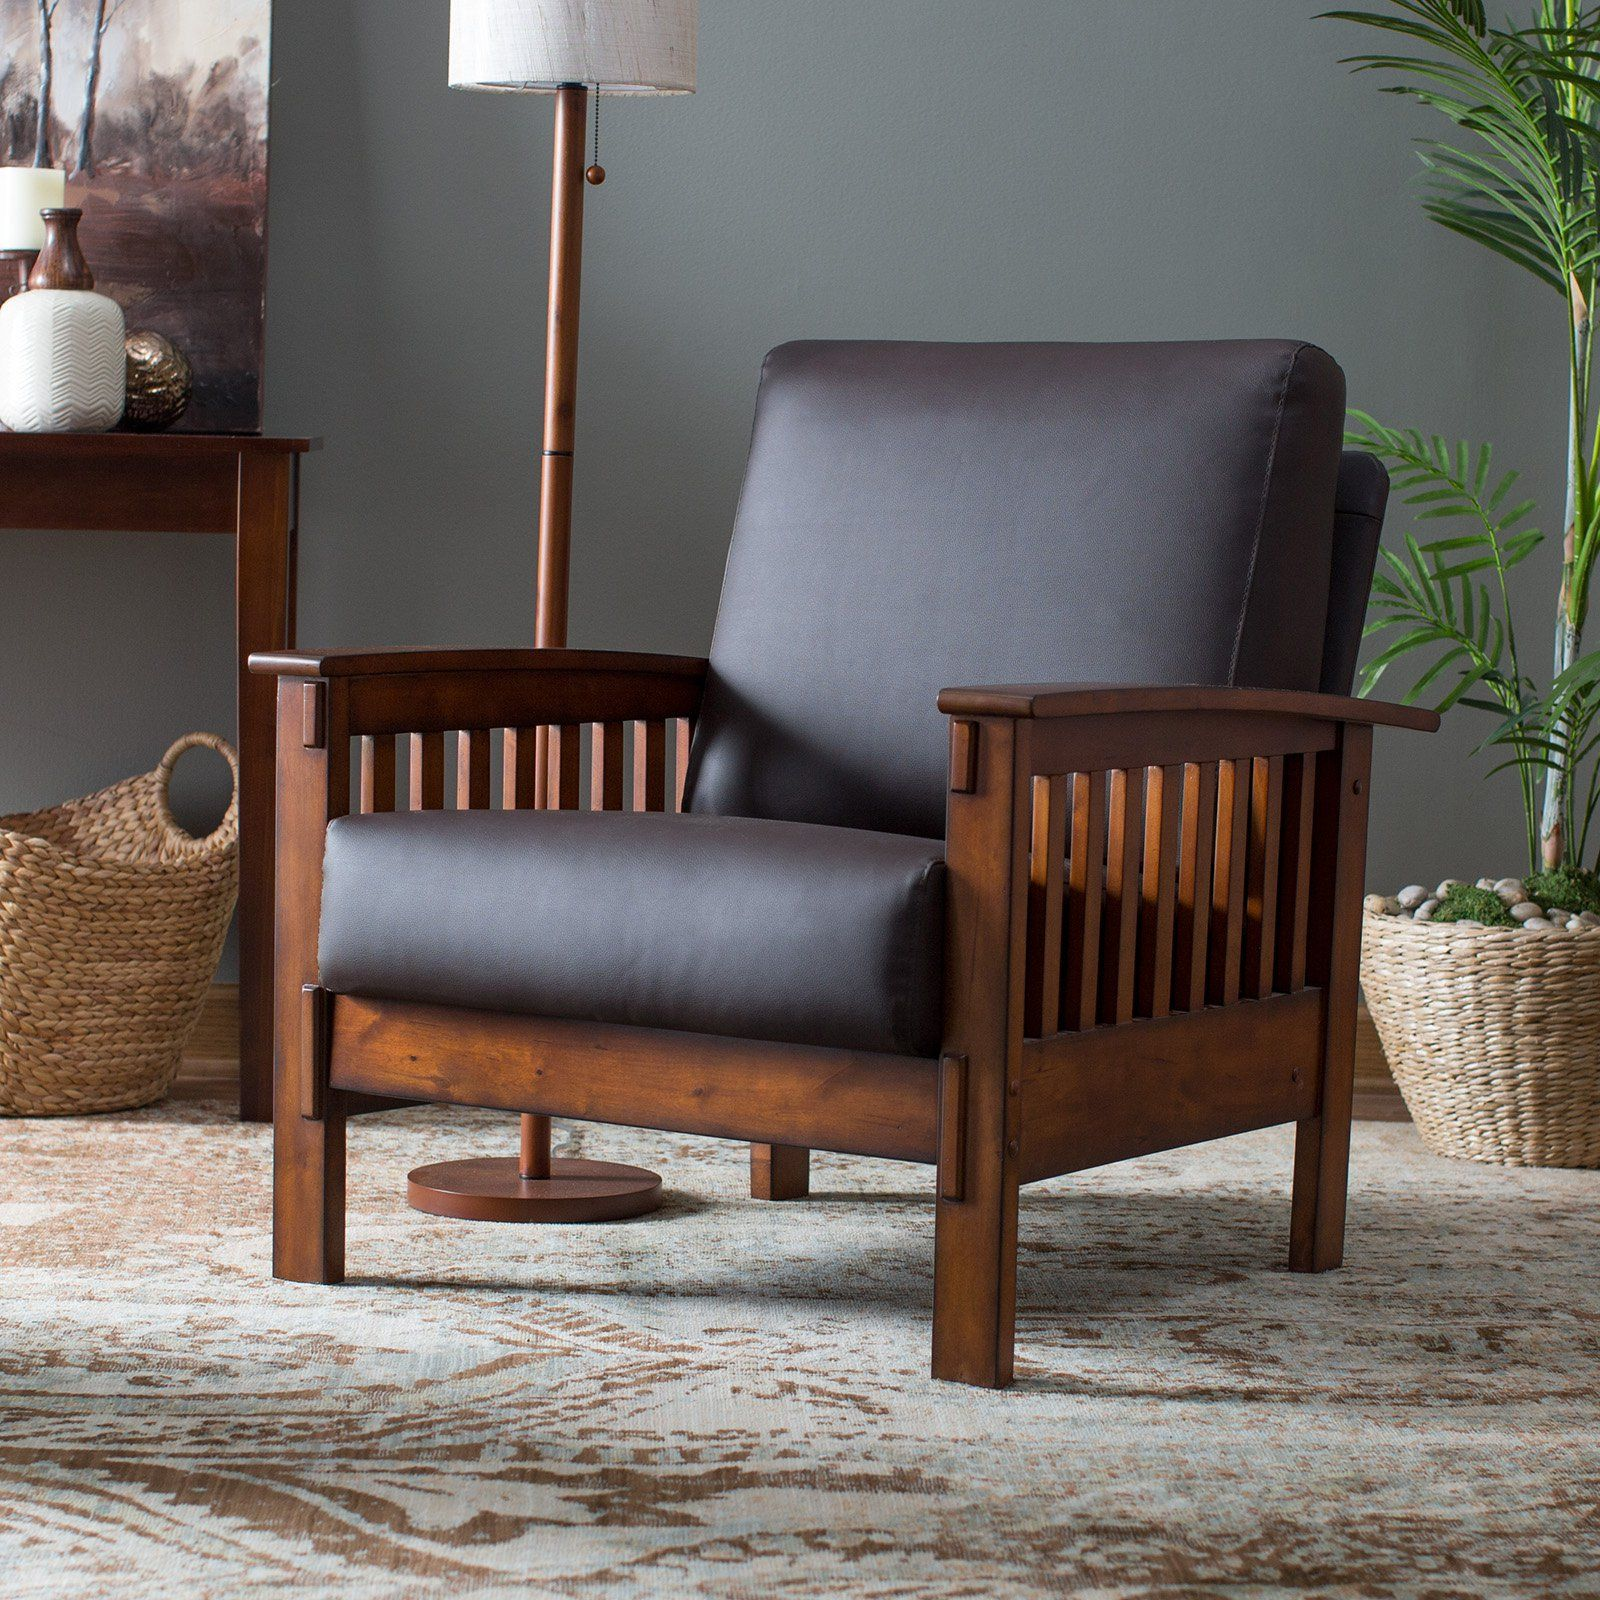 ... Arm Chair   With Its Slatted Sides And Flat Armrests, The Belham Living  Burton Mission Arm Chair Was Clearly Inspired By Classic Craftsman Furniture .